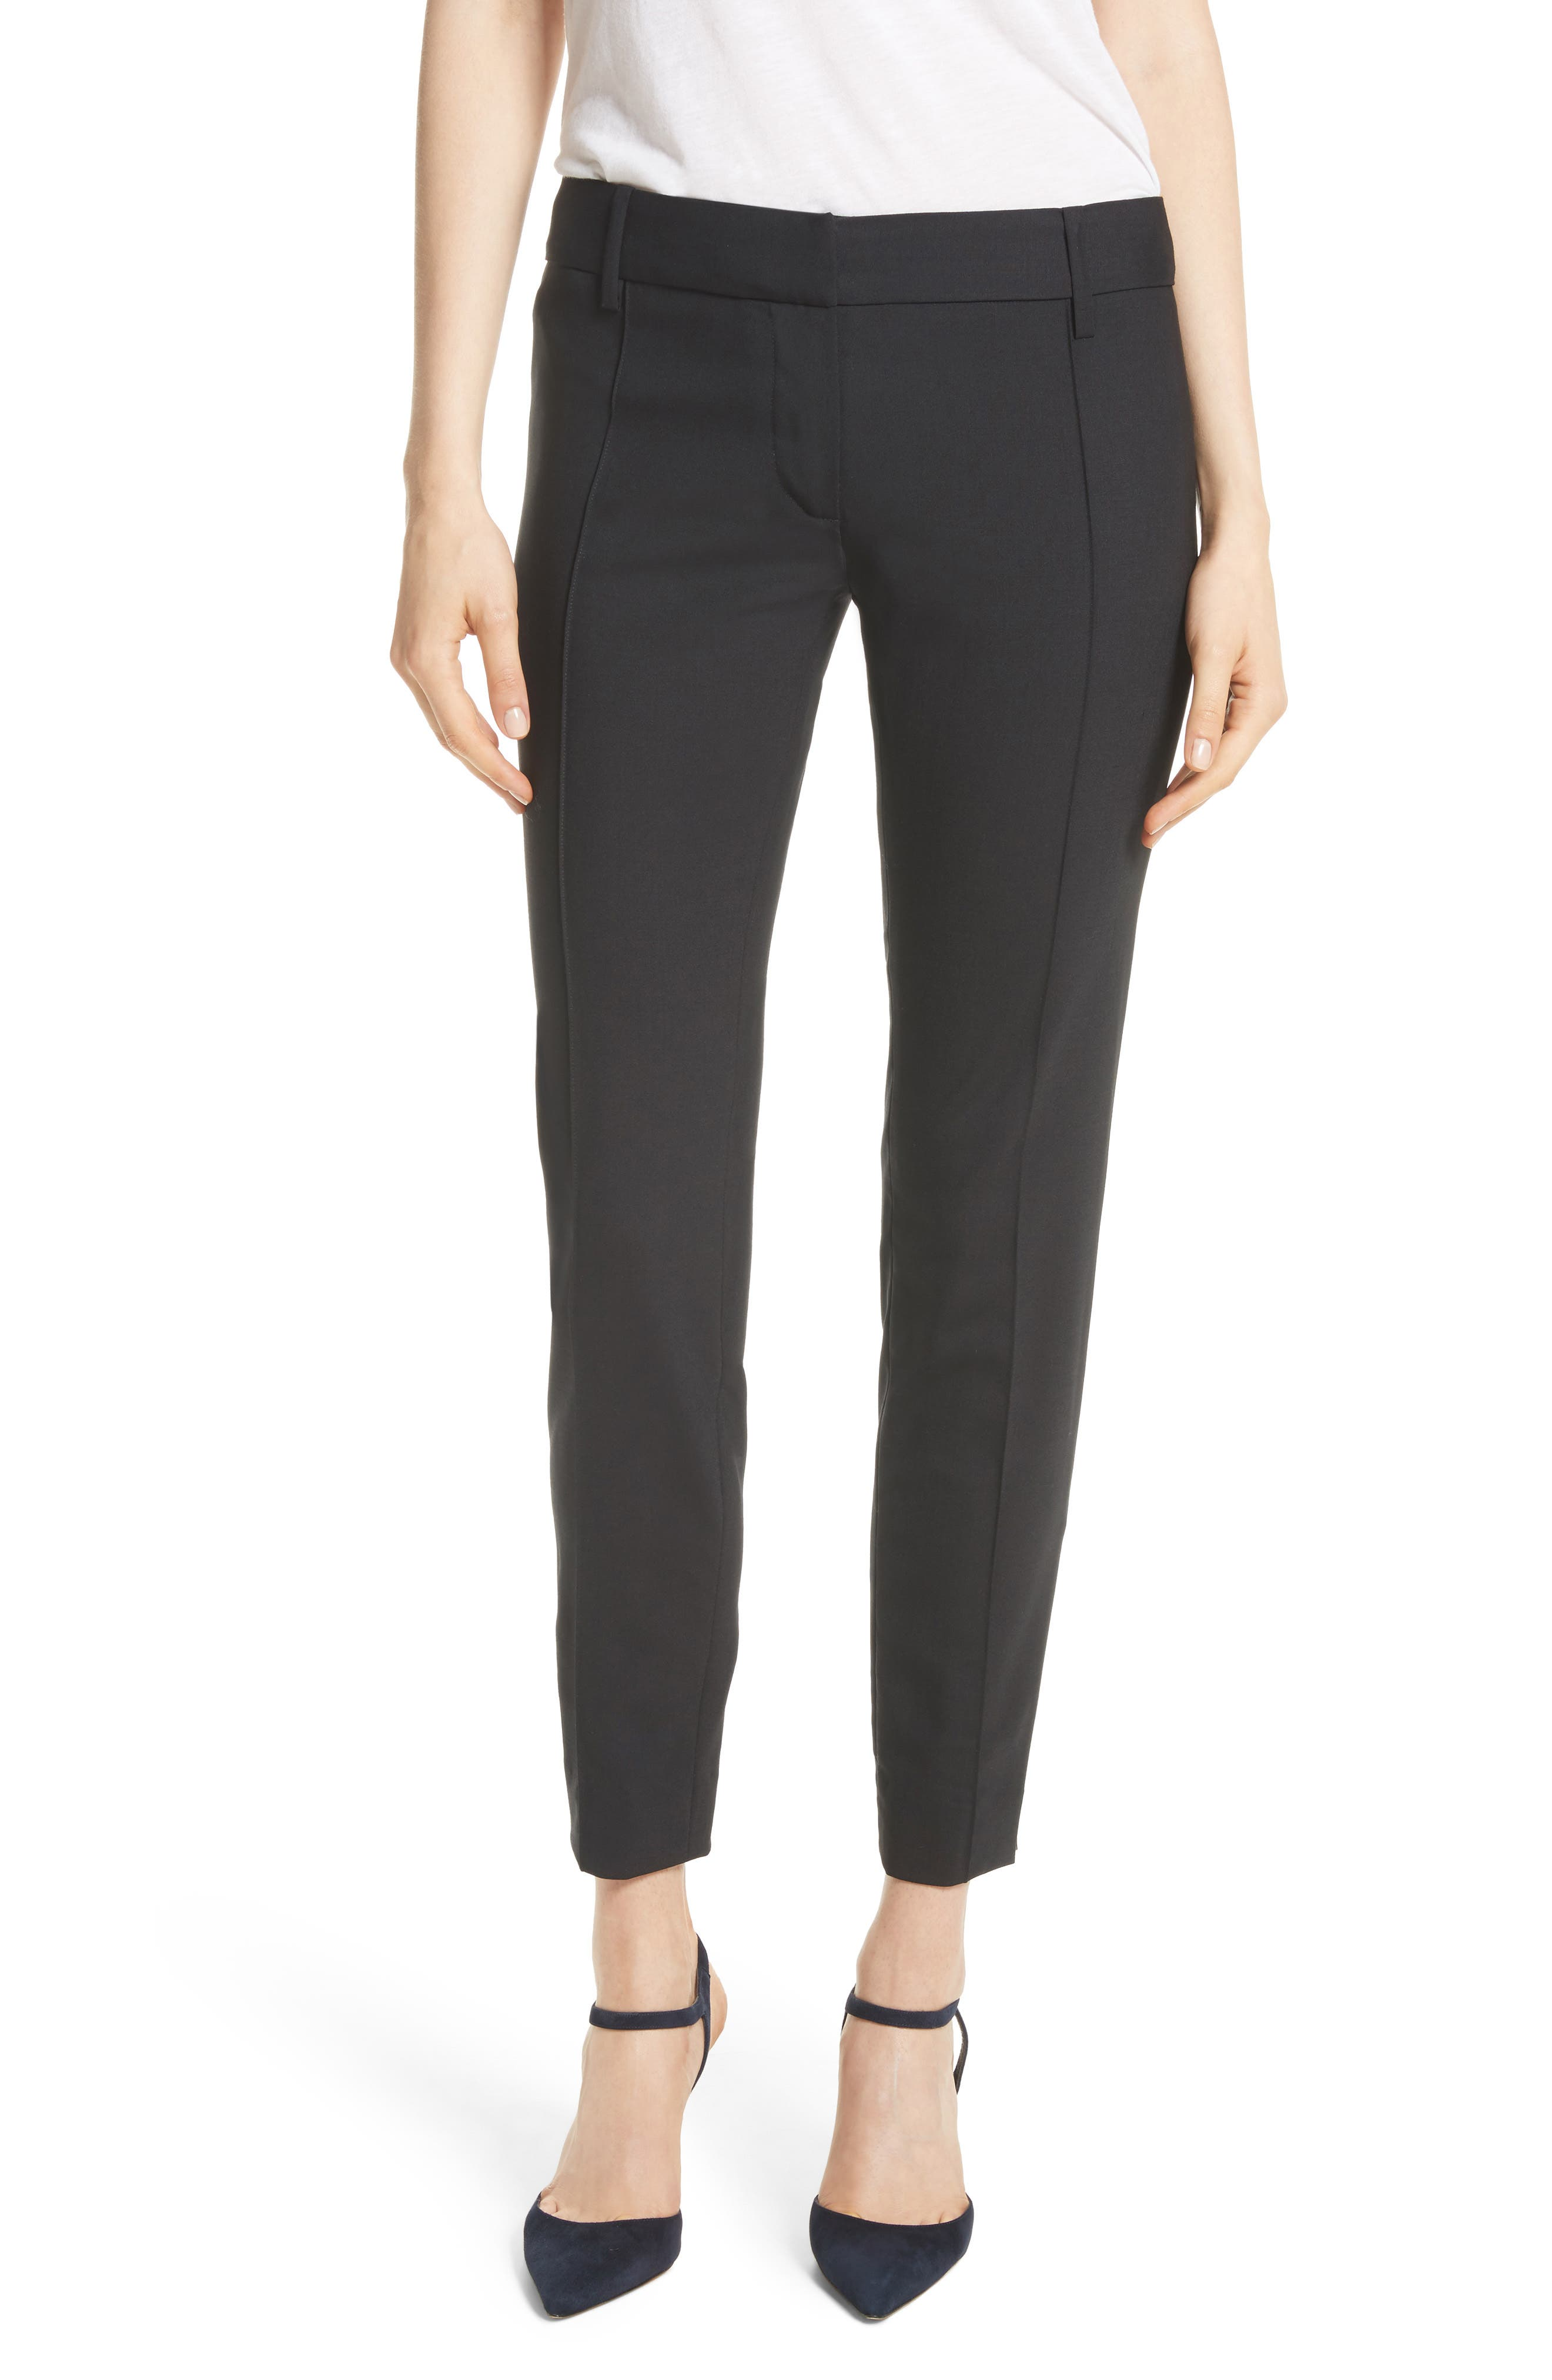 Nahla Ankle Pants,                             Main thumbnail 1, color,                             Black